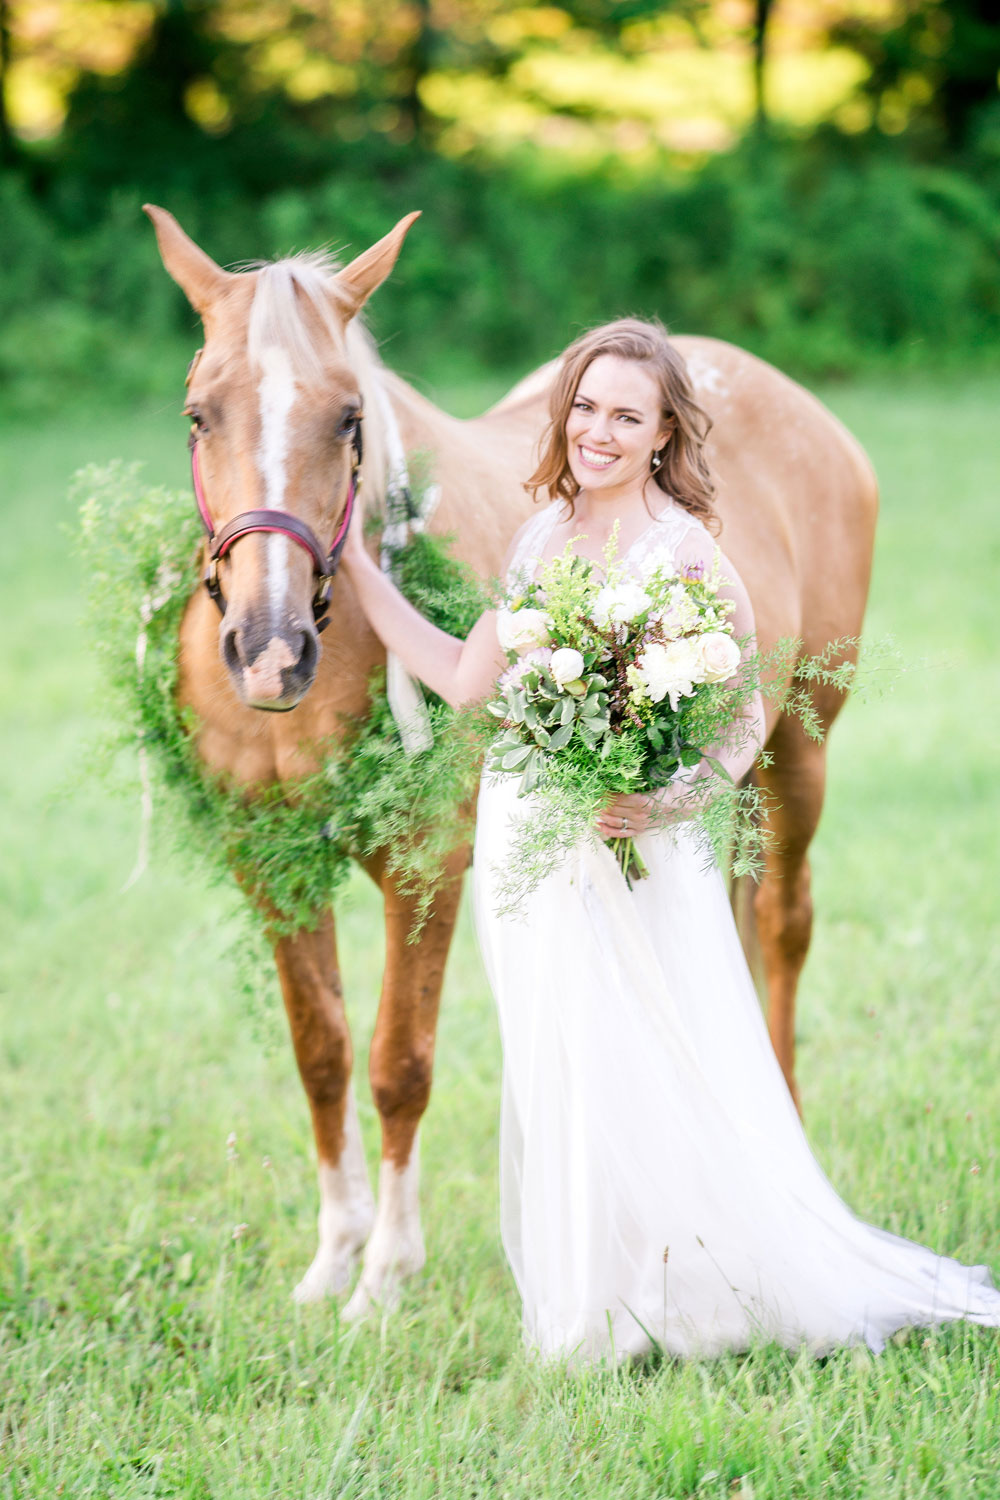 Tuesdays-Together-Blush-and-Sage-Equestrian-Styled-Shoot-Styled-Shoot-0094.jpg